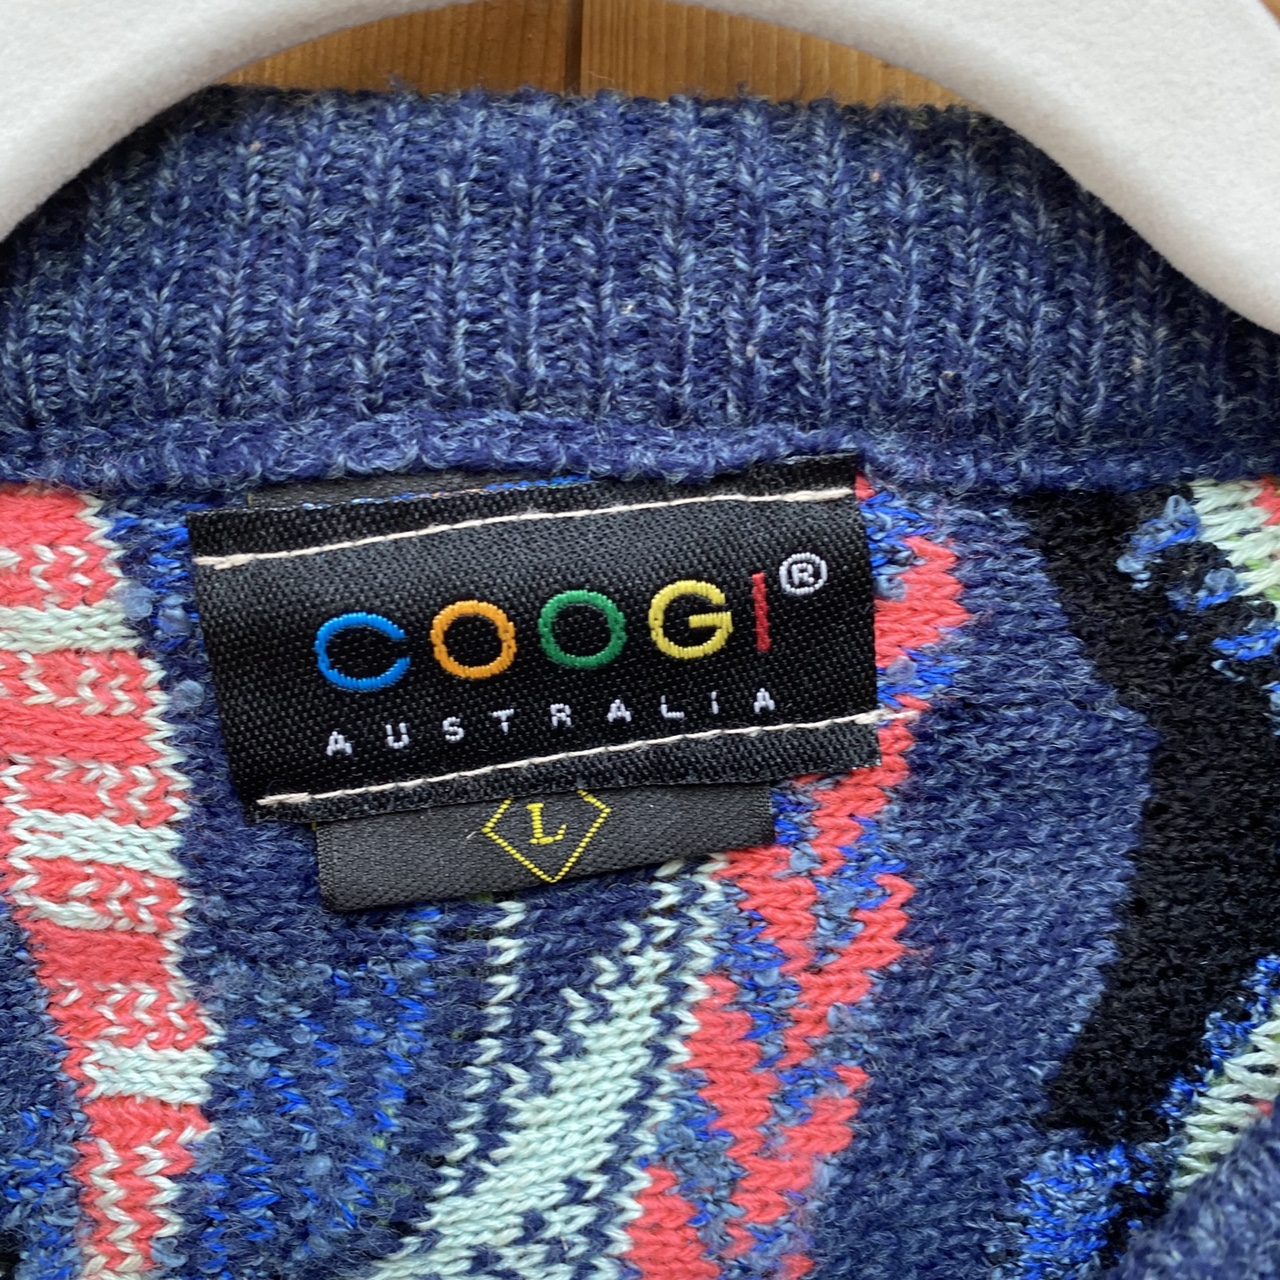 Product Image 2 - Coogi sweater Authentic  Fits L Send offerd Coogi